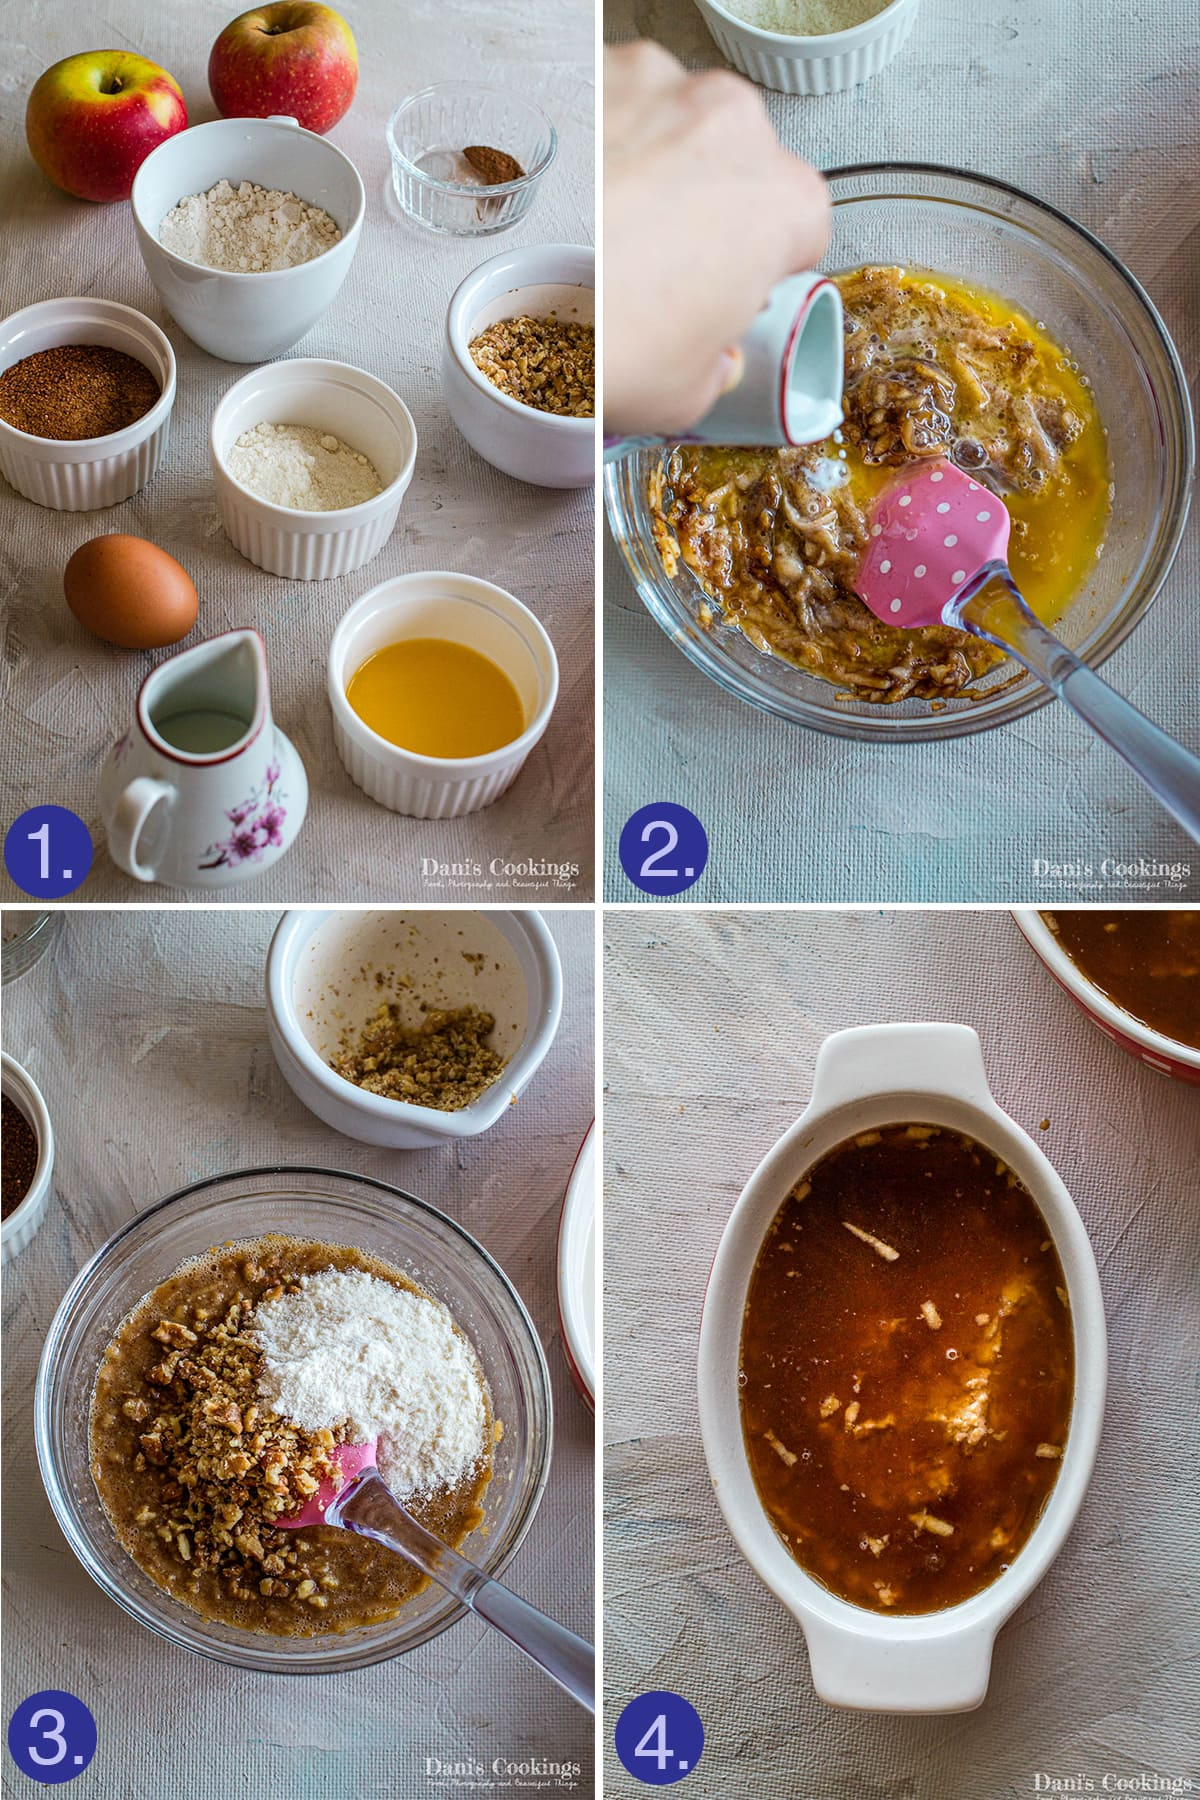 ingredients and steps to make apple caramel pudding